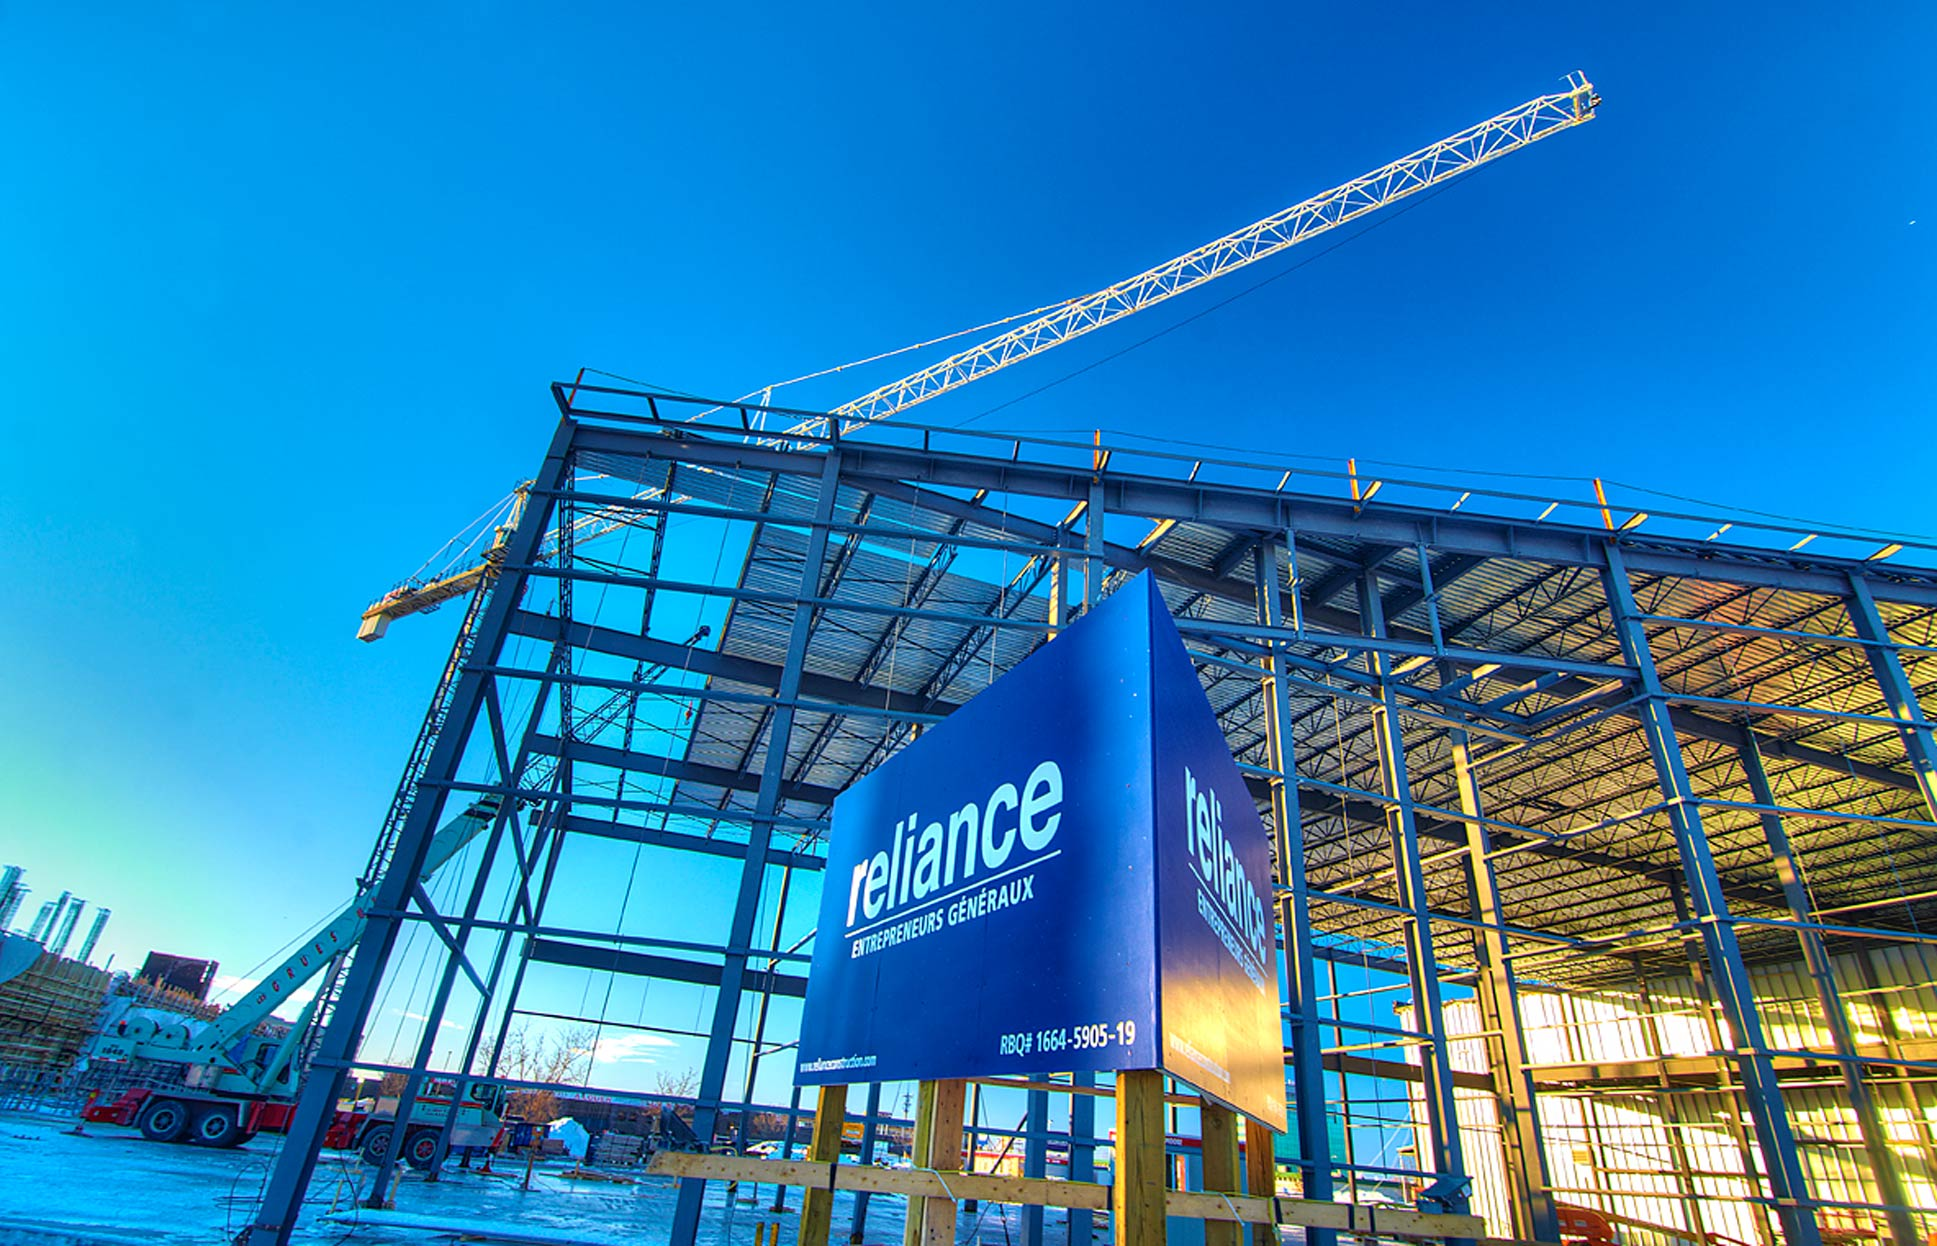 Reliance Construction Group Home